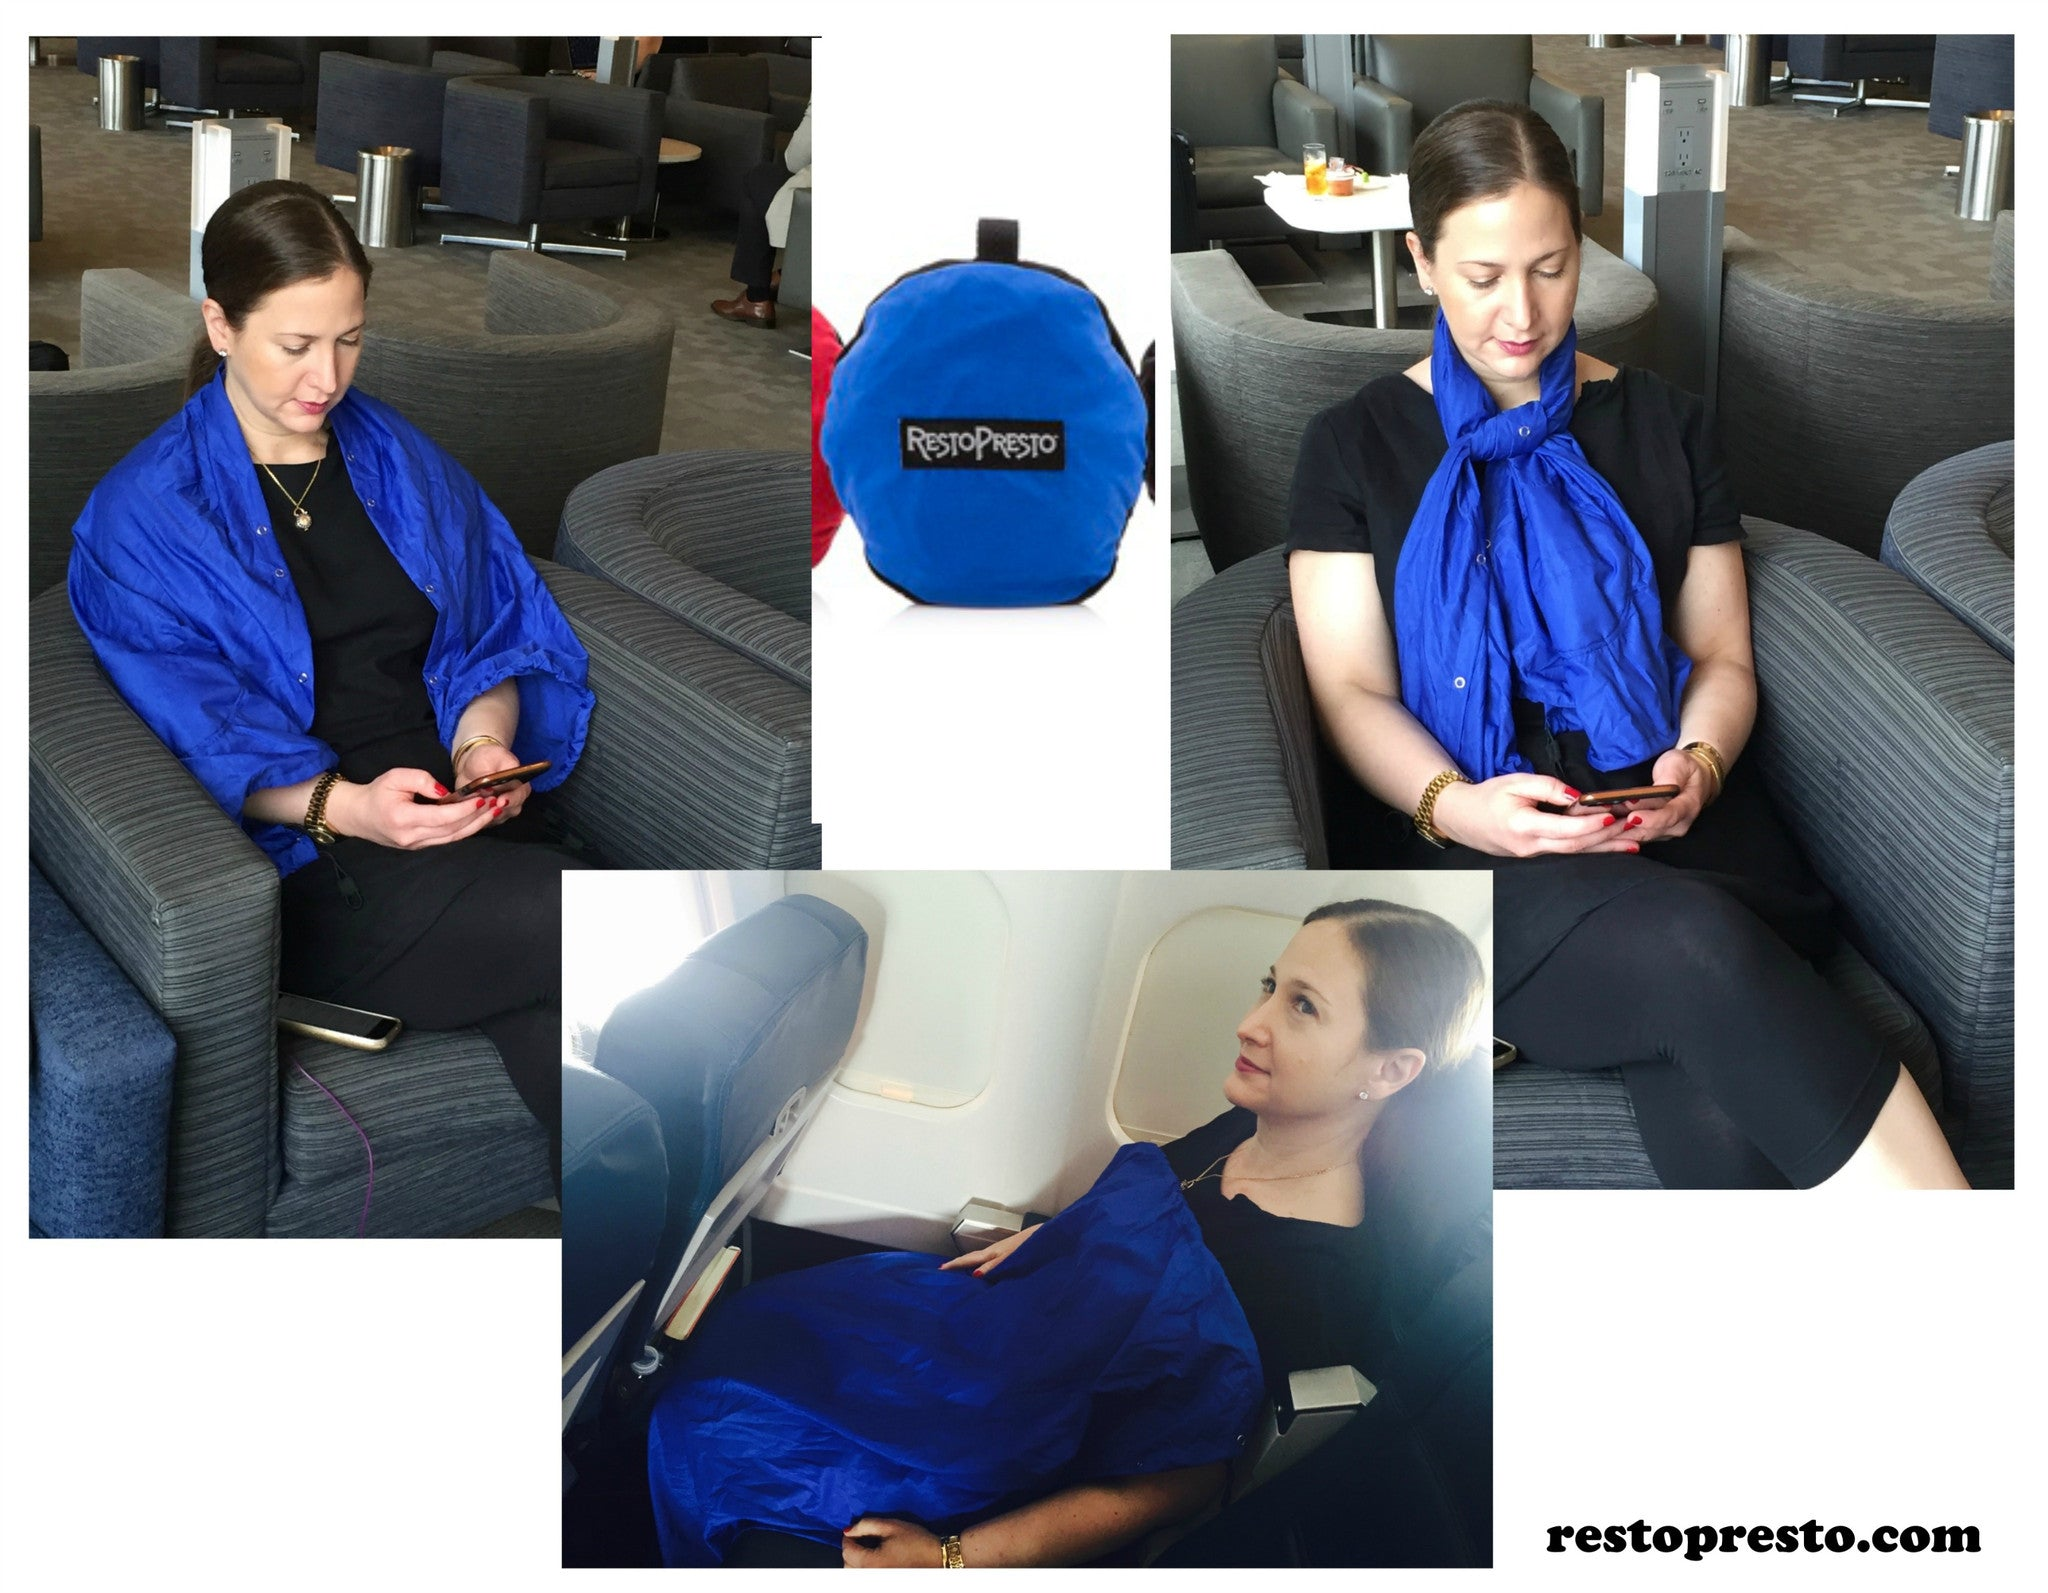 See pics of how RestoPresto makes travel easier!